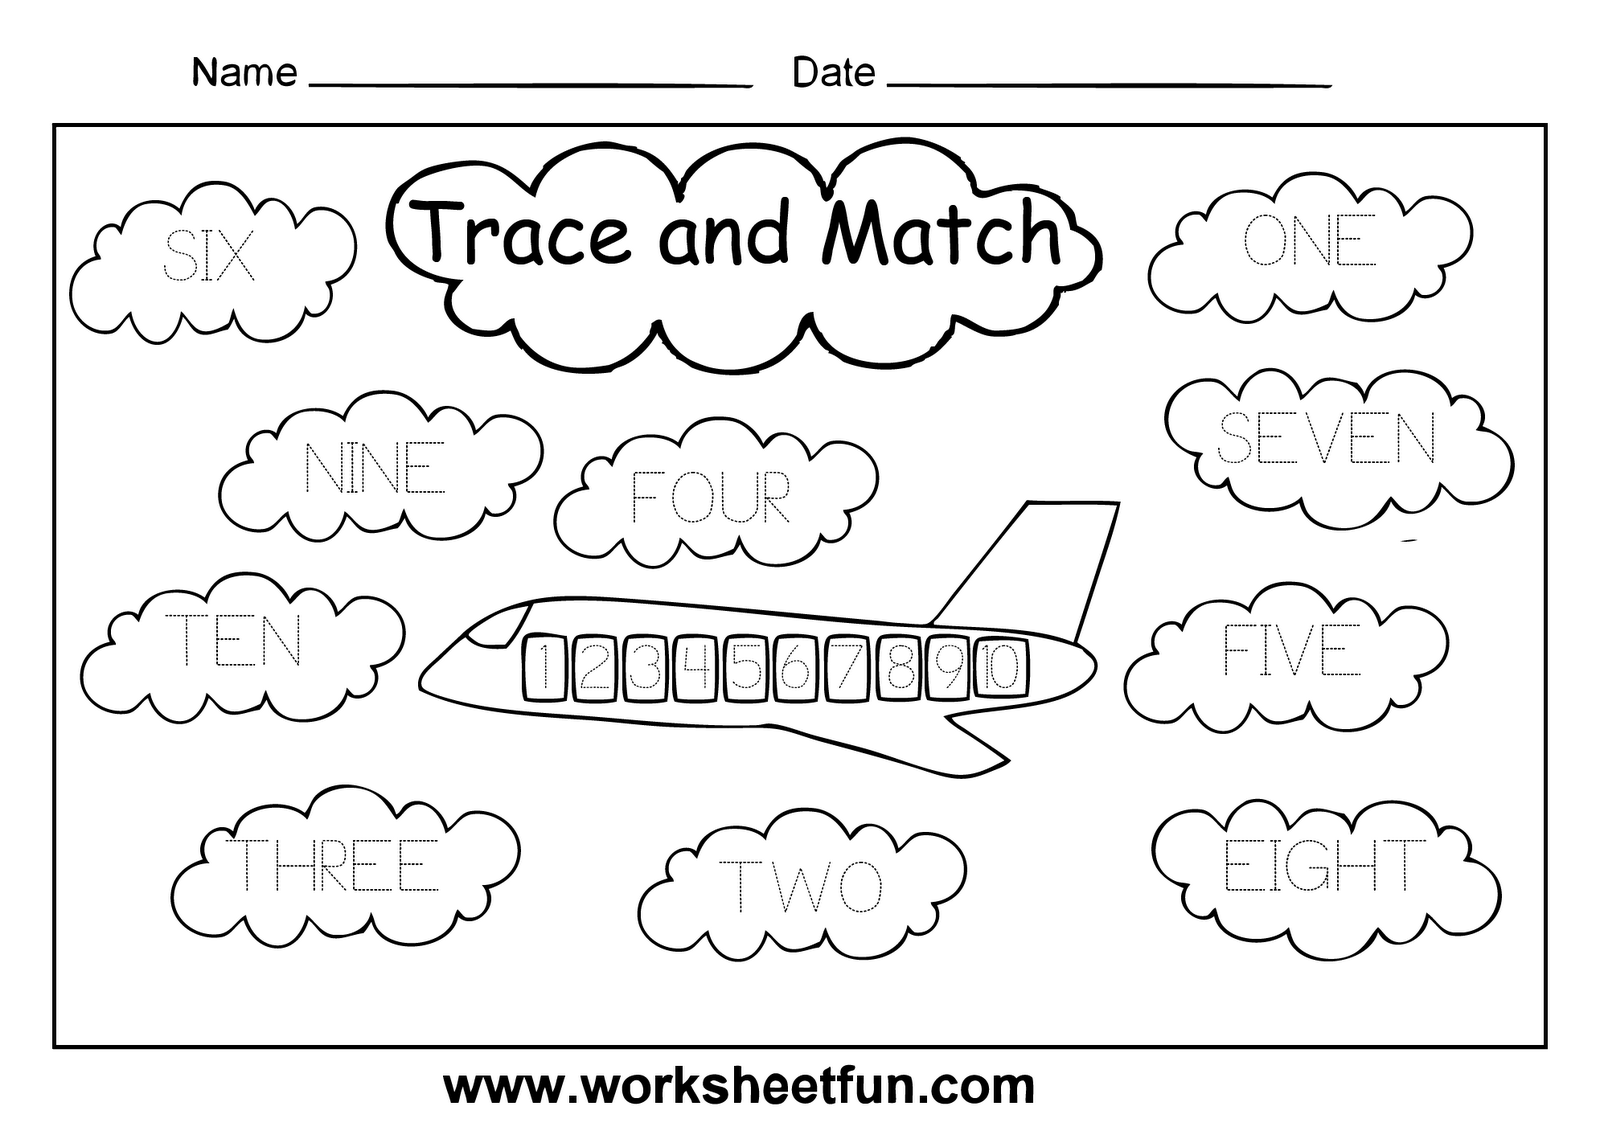 Weirdmailus  Scenic Worksheet Numbers    Reocurent With Luxury W Worksheet Besides Perpendicular Lines Worksheet Furthermore Craap Test Worksheet With Attractive Printable Subtraction Worksheets Also Wave Properties Worksheet In Addition The Nervous System Worksheet And Phonics Worksheets Kindergarten As Well As Sentence Writing Worksheets Additionally Problem Solving Worksheets For Adults From Reocurentcom With Weirdmailus  Luxury Worksheet Numbers    Reocurent With Attractive W Worksheet Besides Perpendicular Lines Worksheet Furthermore Craap Test Worksheet And Scenic Printable Subtraction Worksheets Also Wave Properties Worksheet In Addition The Nervous System Worksheet From Reocurentcom